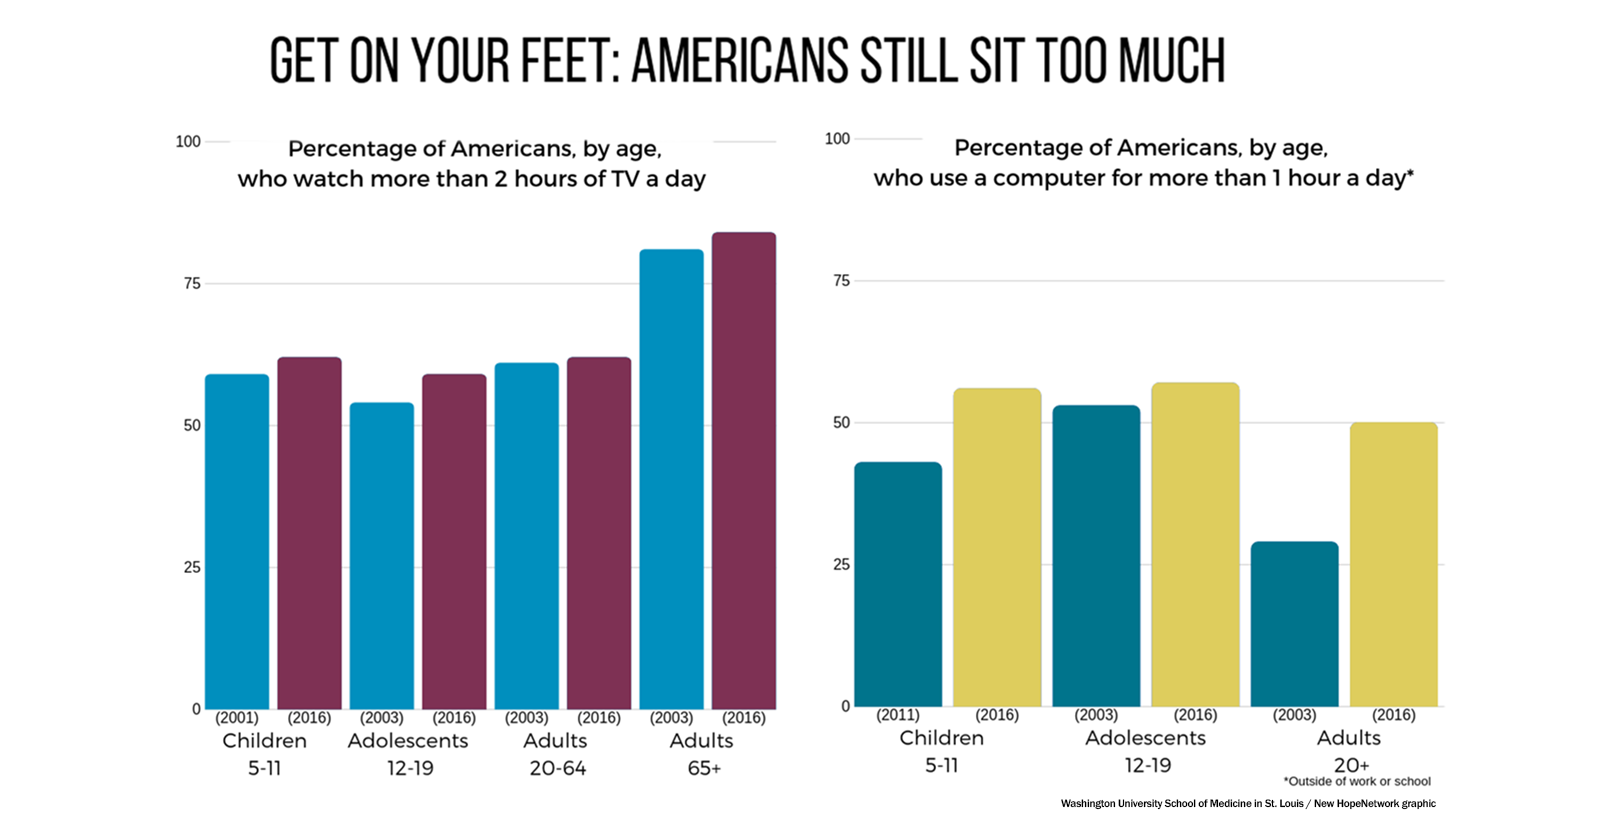 Most Americans spend excessive time sitting